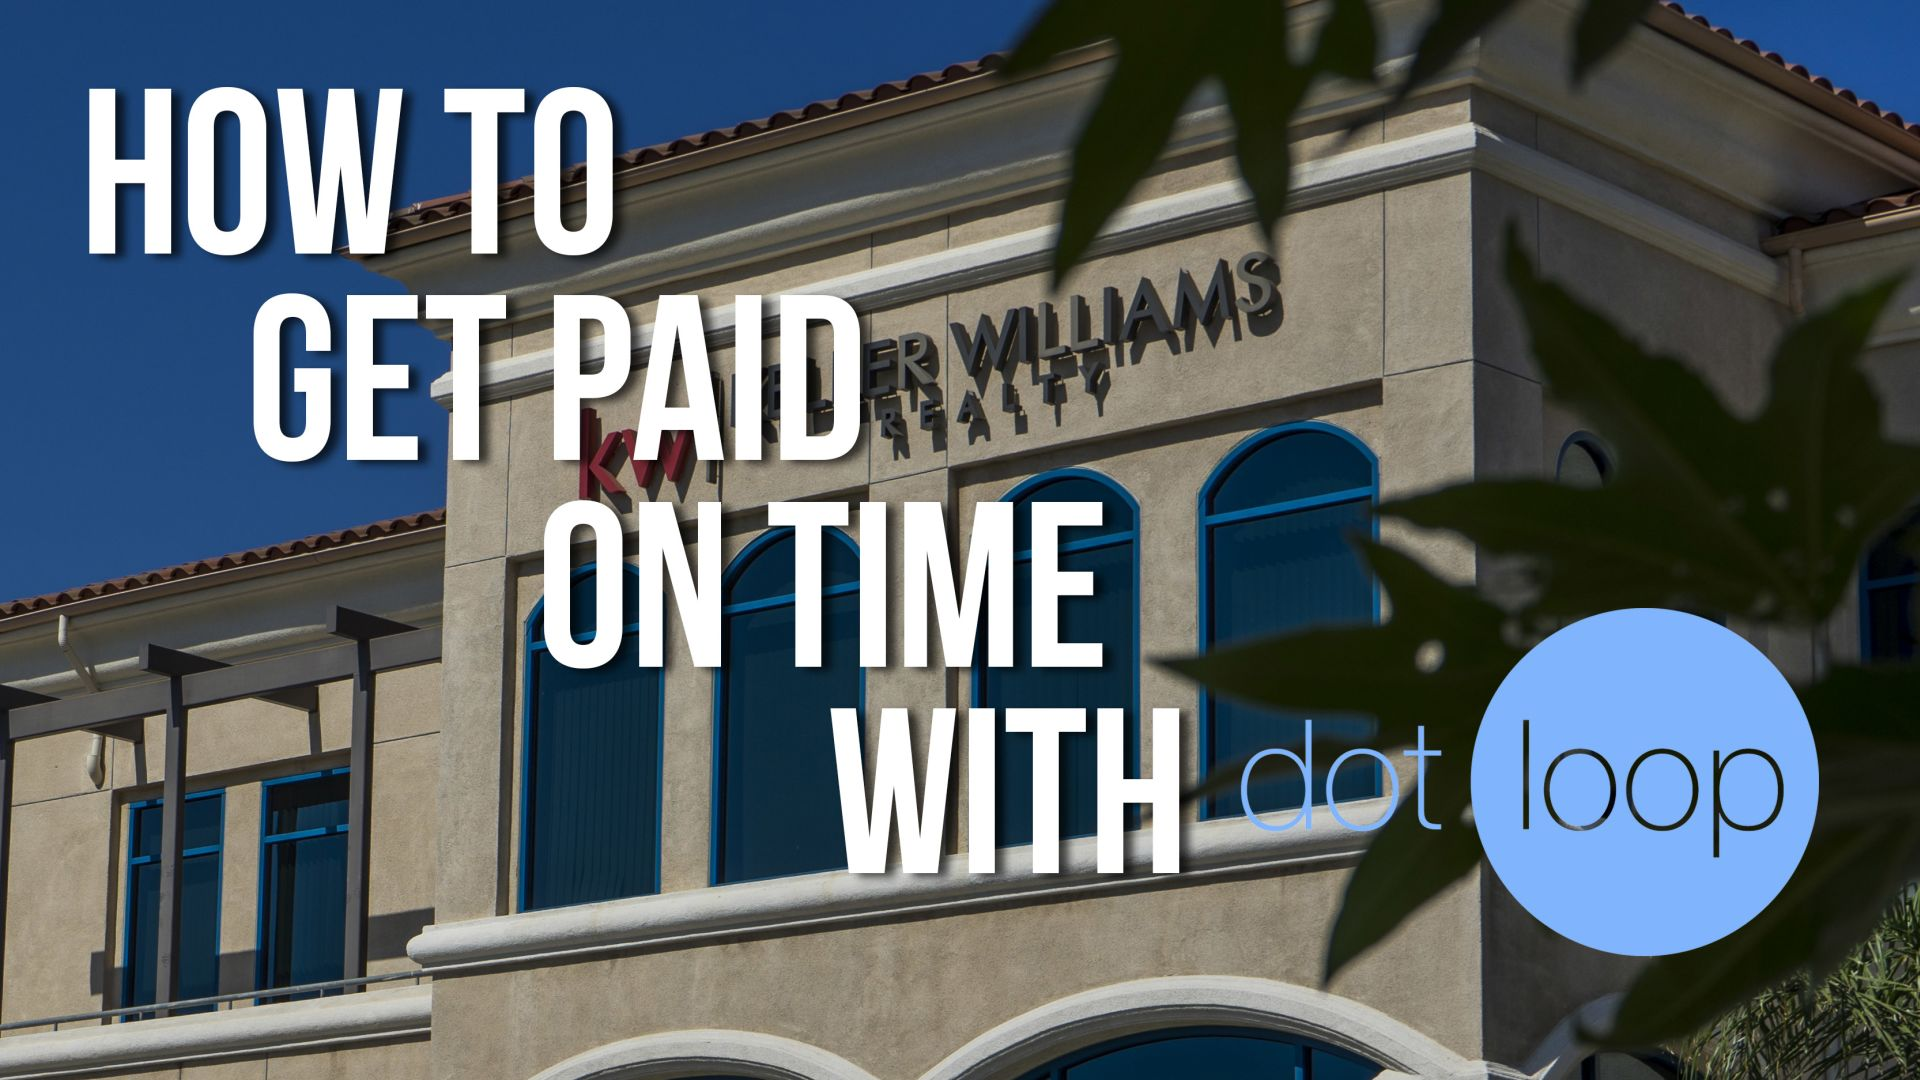 Tips For Getting Paid ON TIME With Dotloop